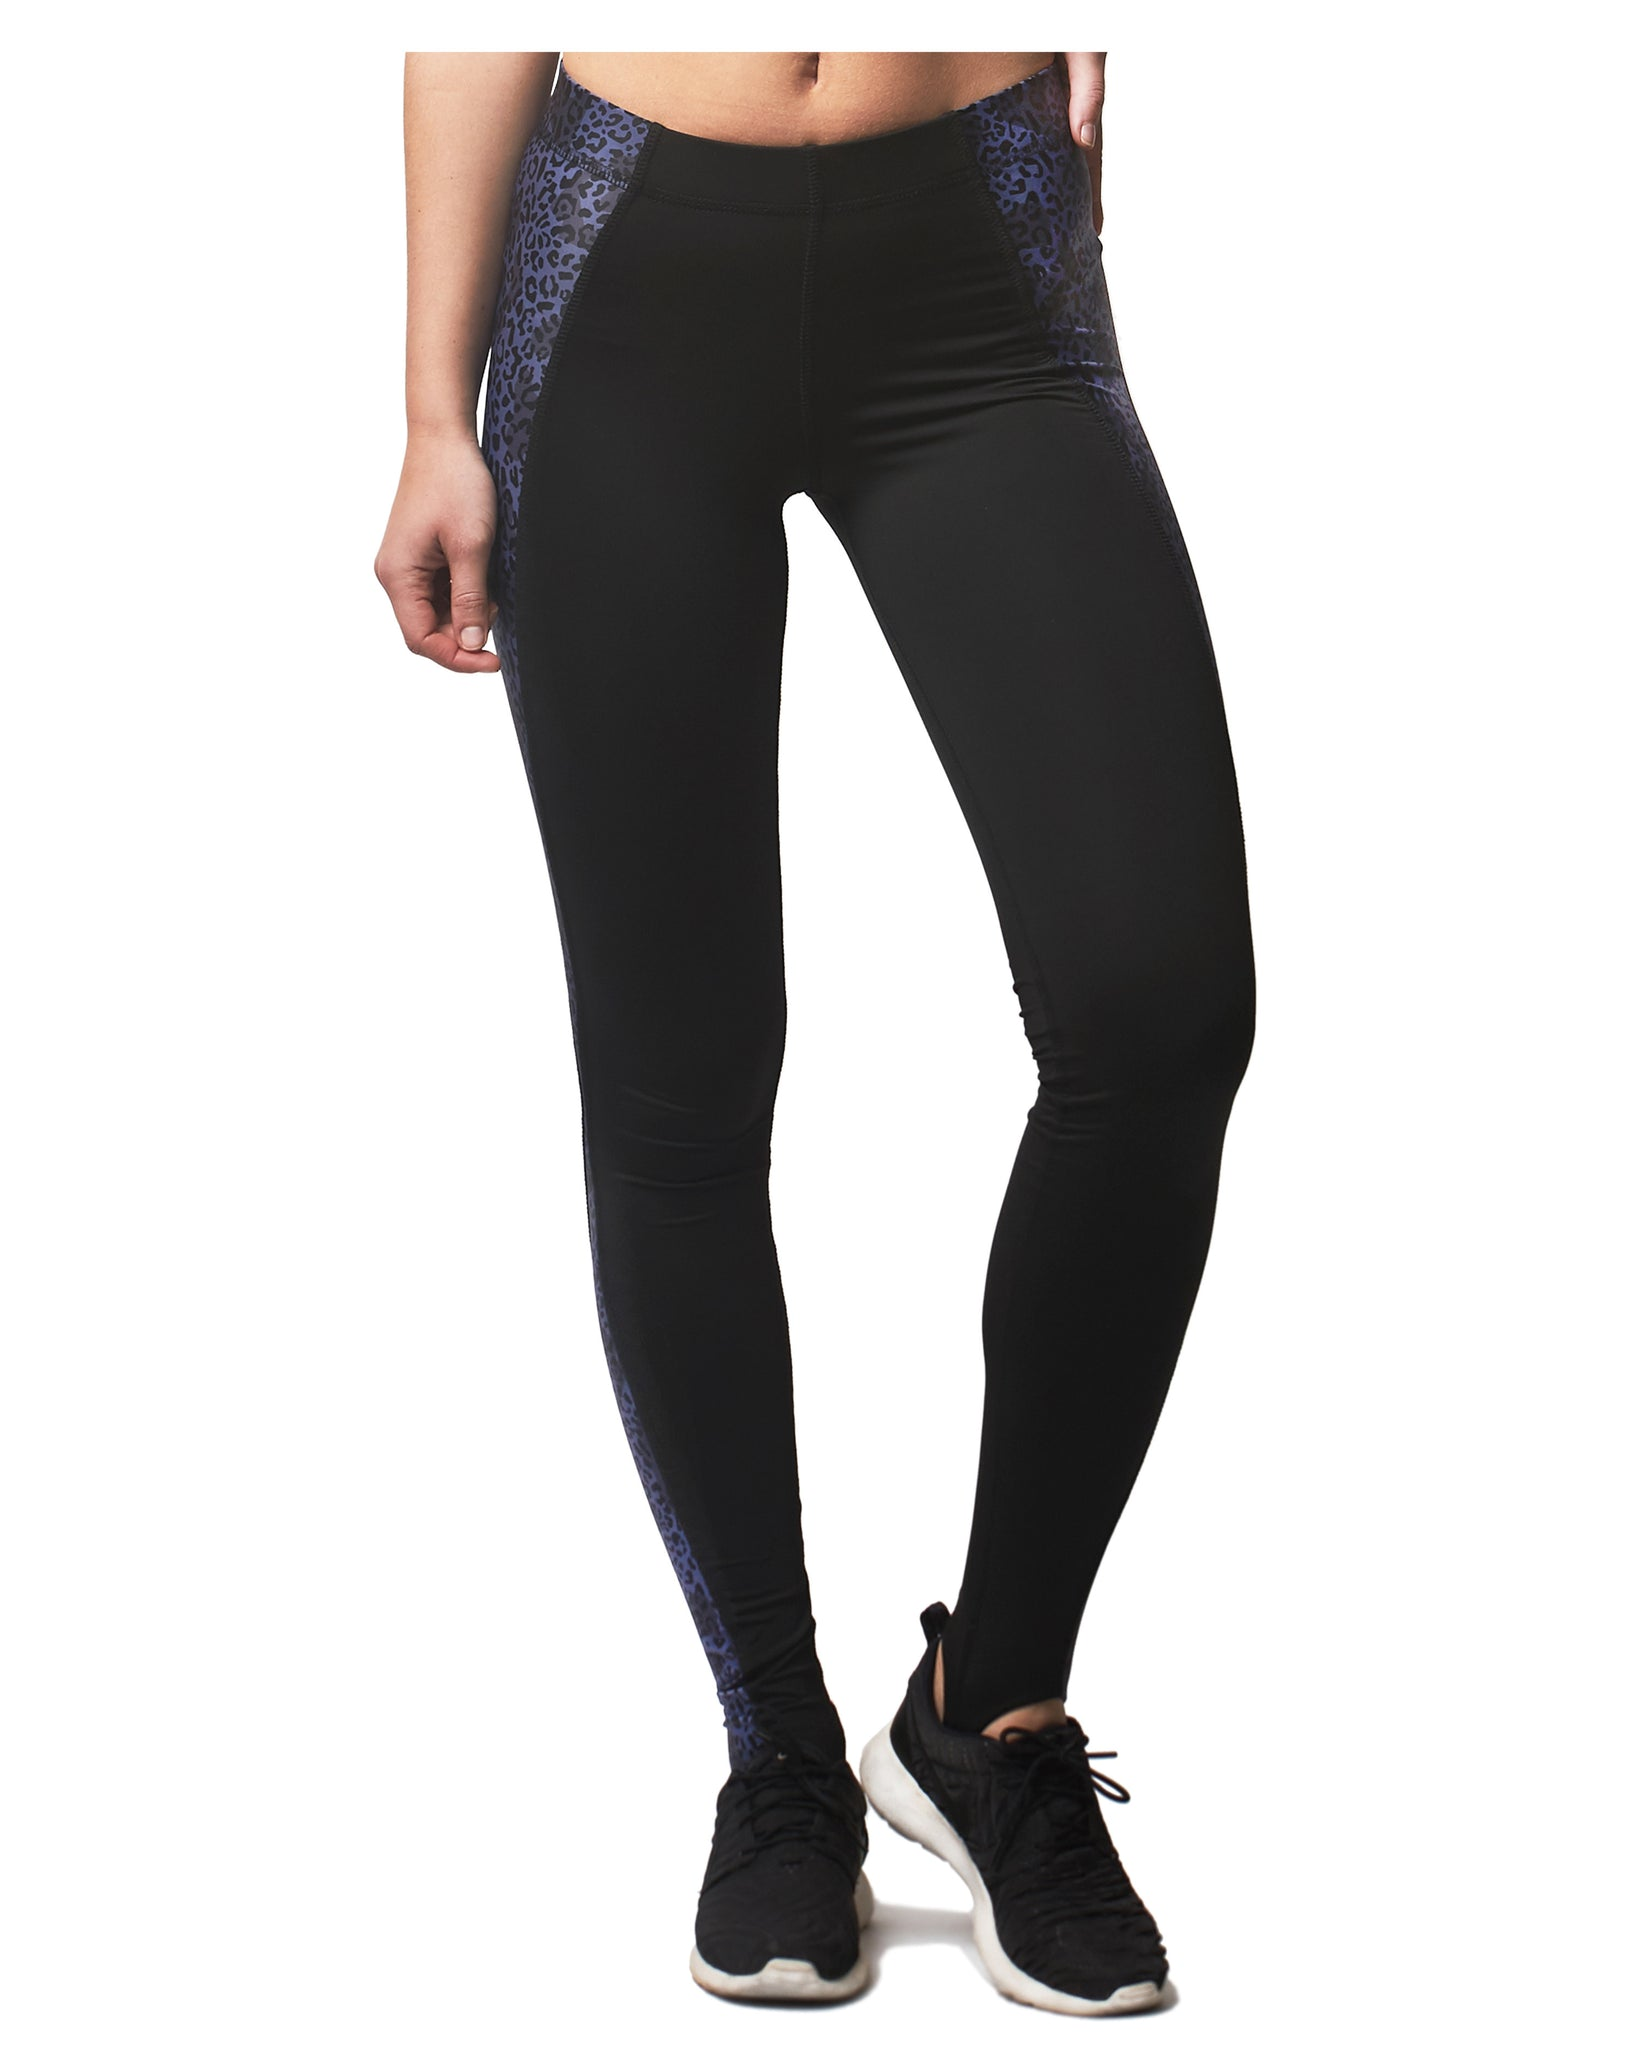 LPRD Midnight Leopard Panel Leggings | Front View Close